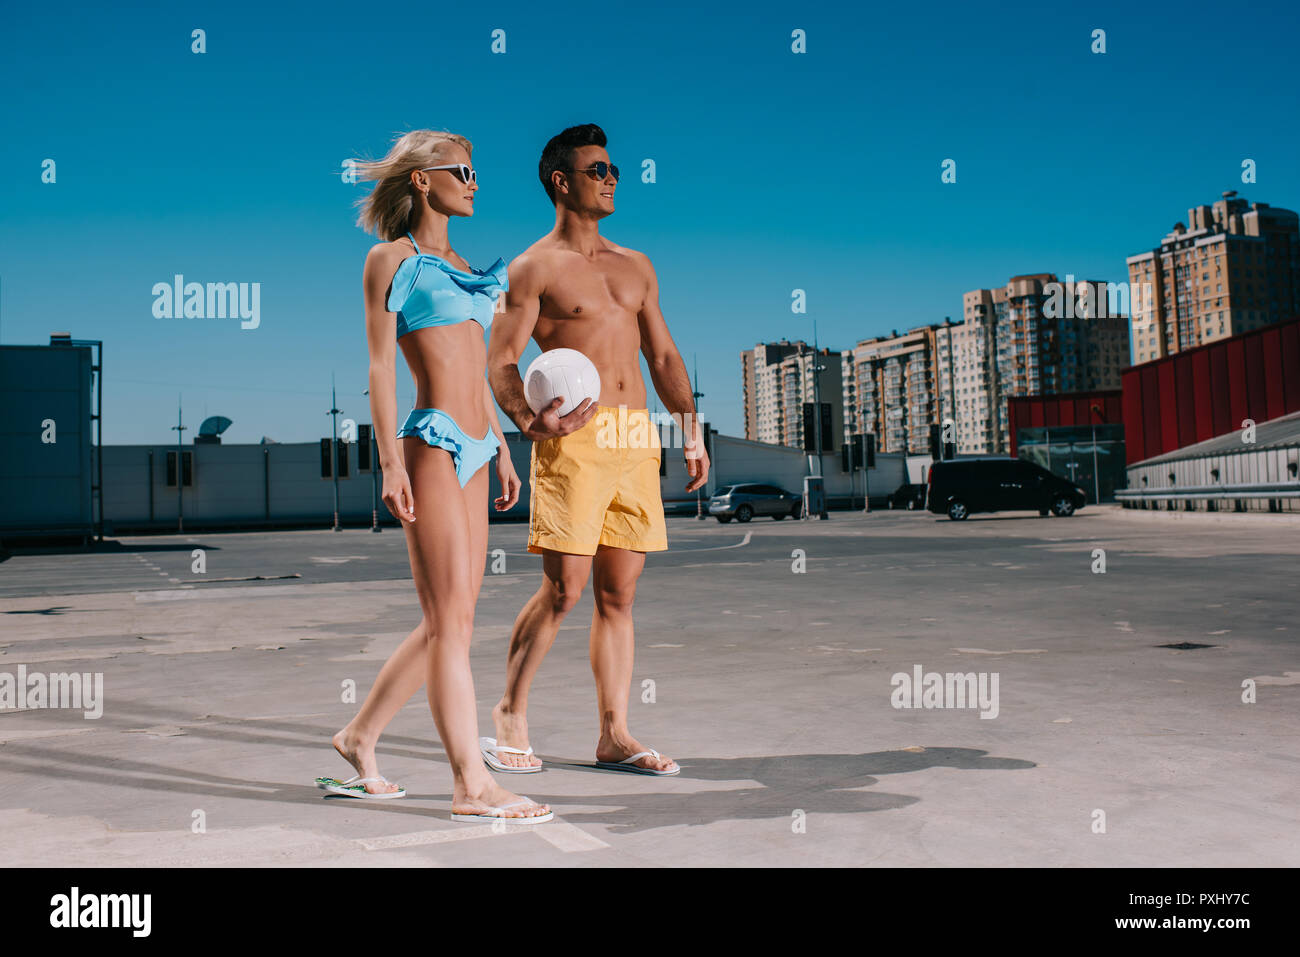 young couple in beach clothes with volleyball ball on parking - Stock Image